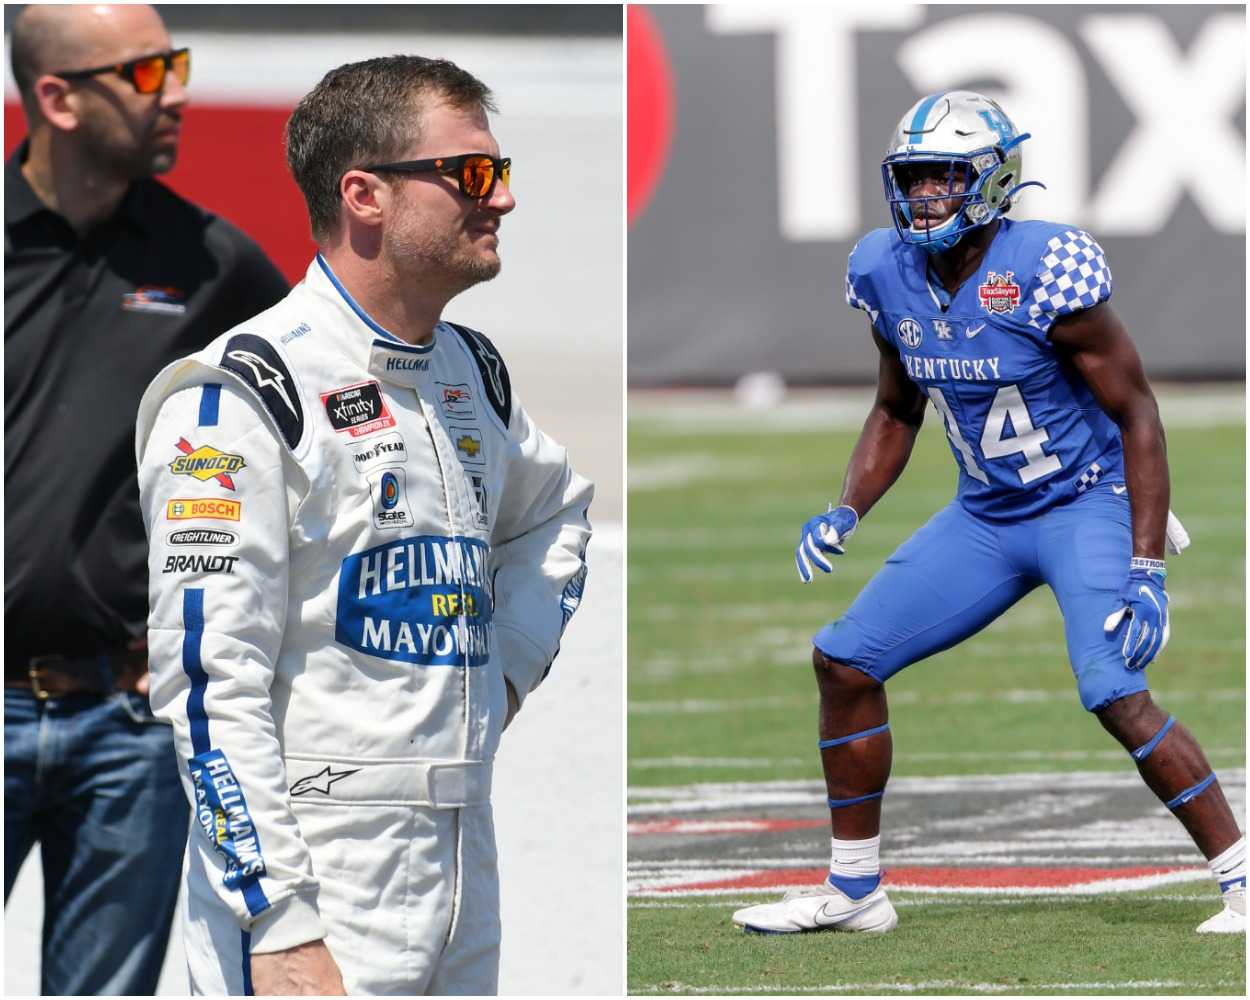 Dale Earnhardt Jr. Makes Surprise Call to Washington Football Team First-Round Pick Jamin Davis at Request of Head Coach Ron Rivera